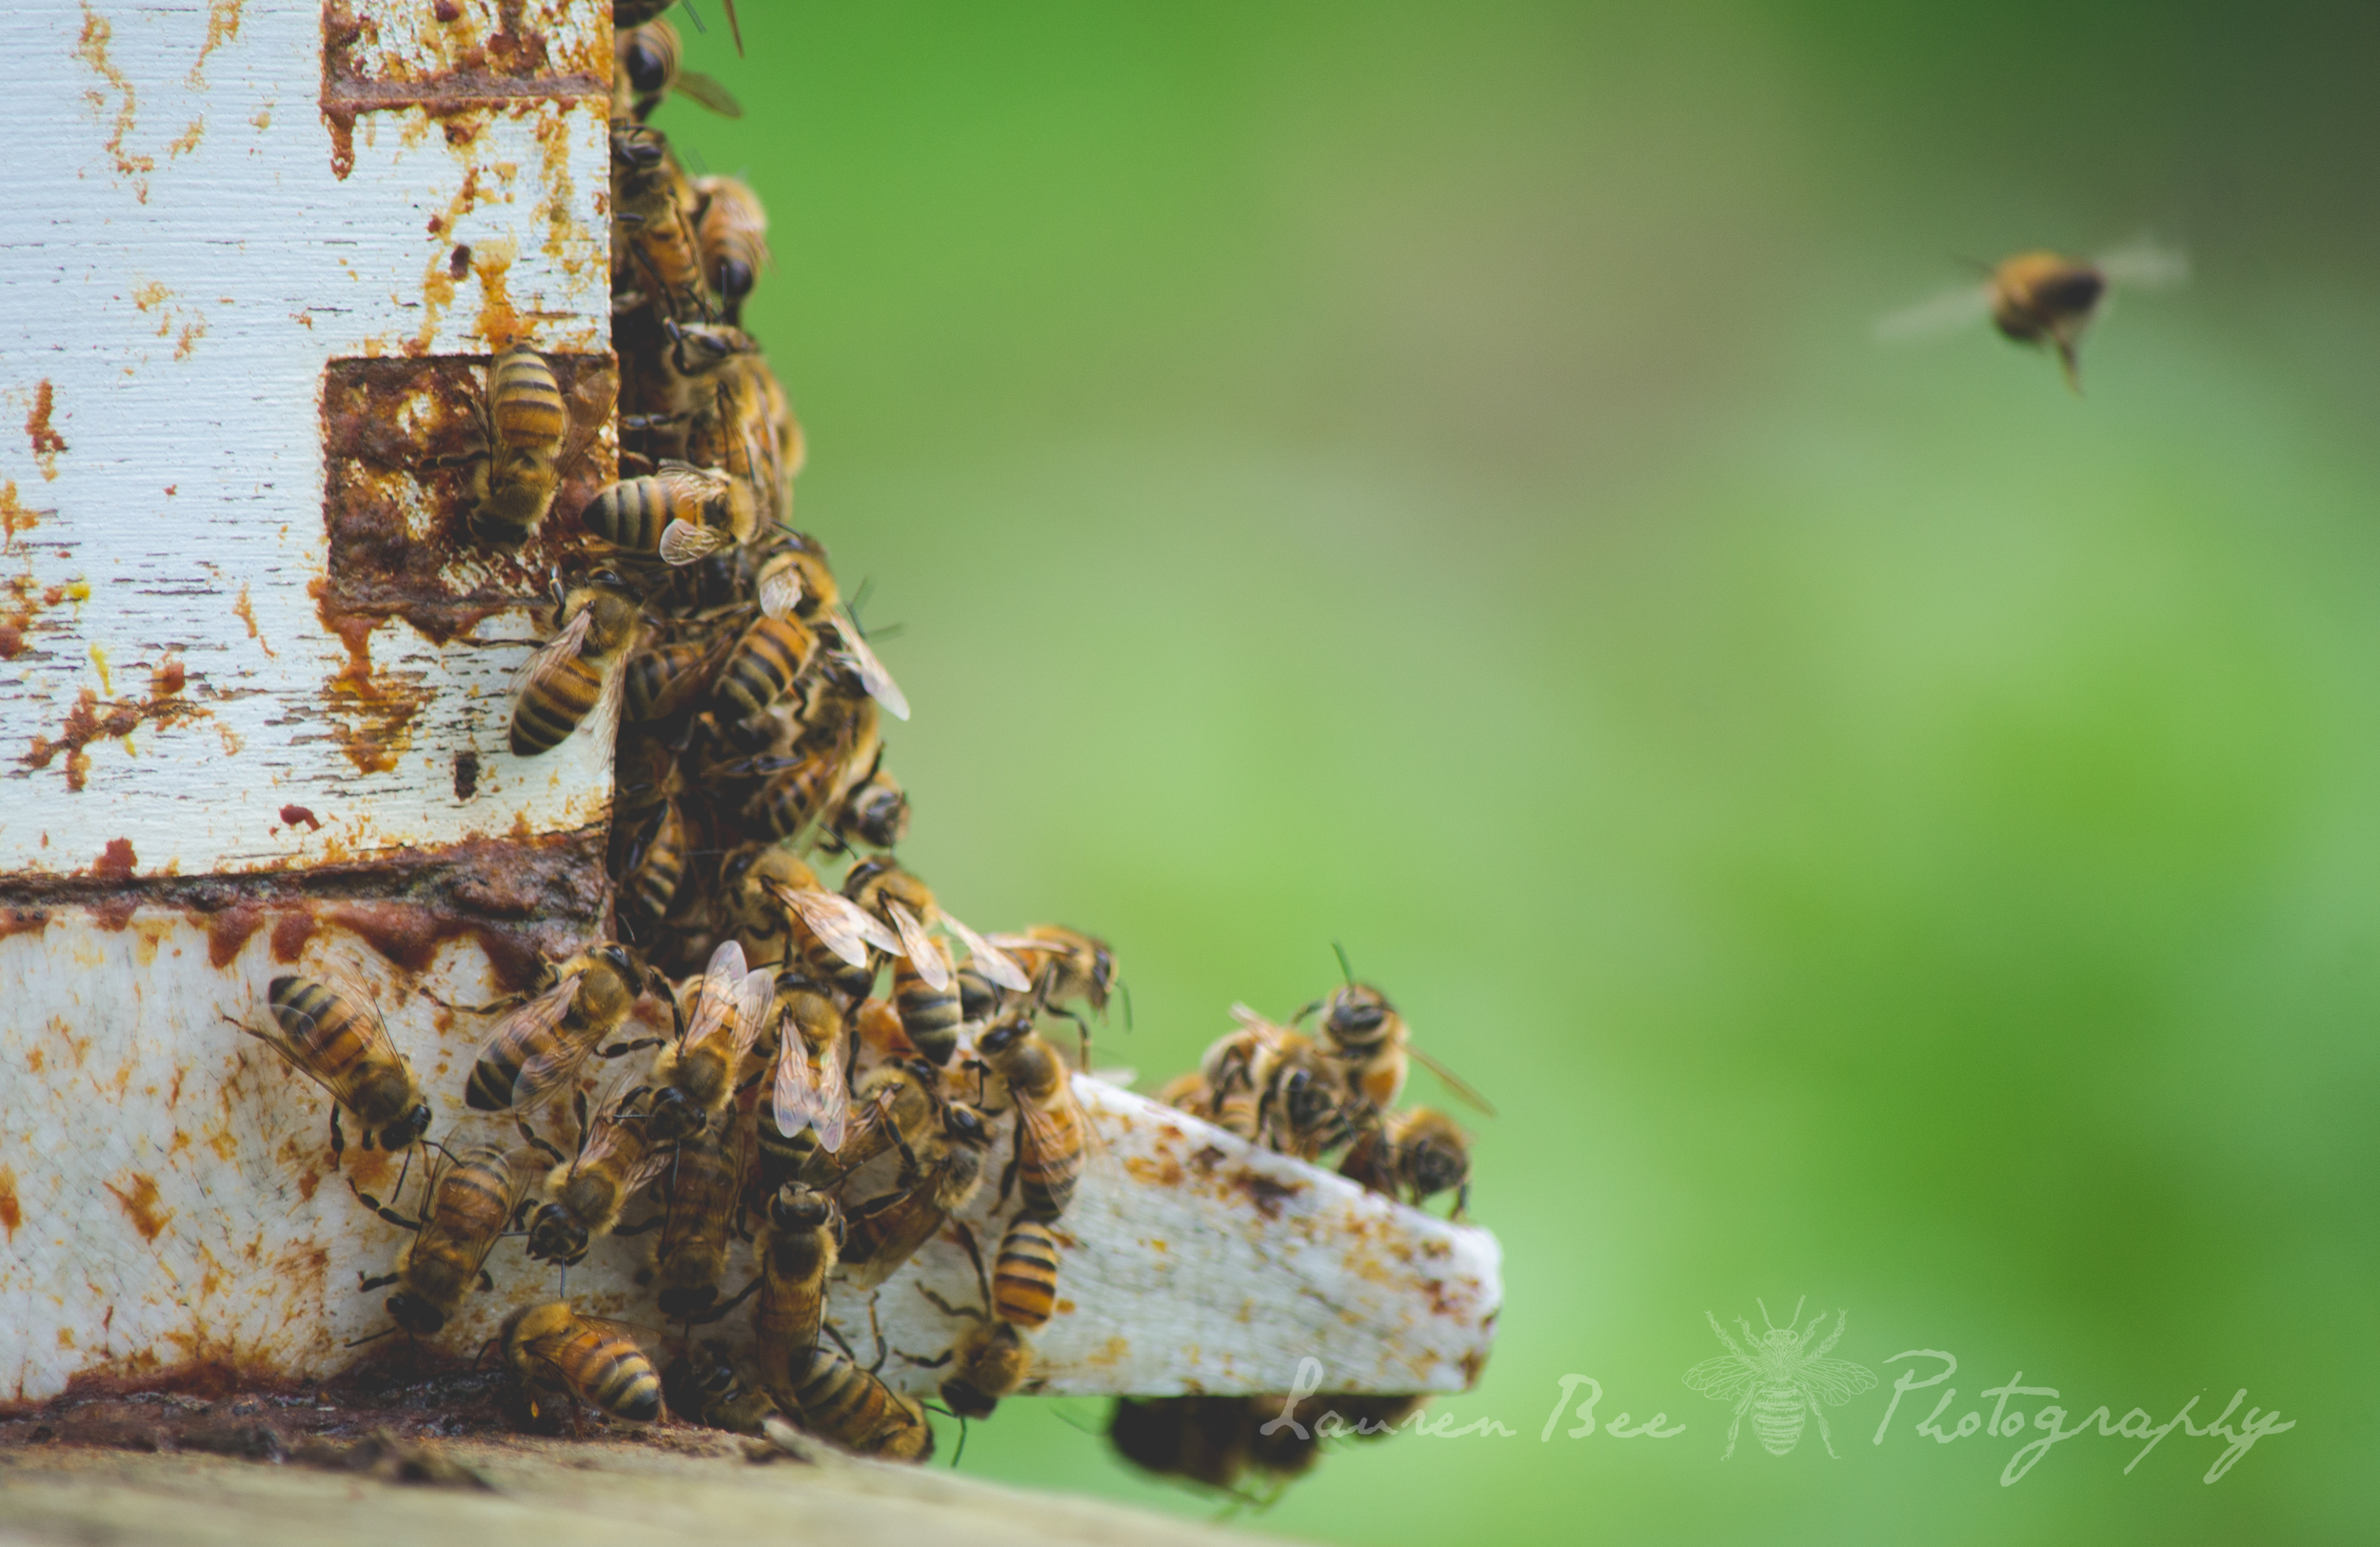 honey bees and their hive